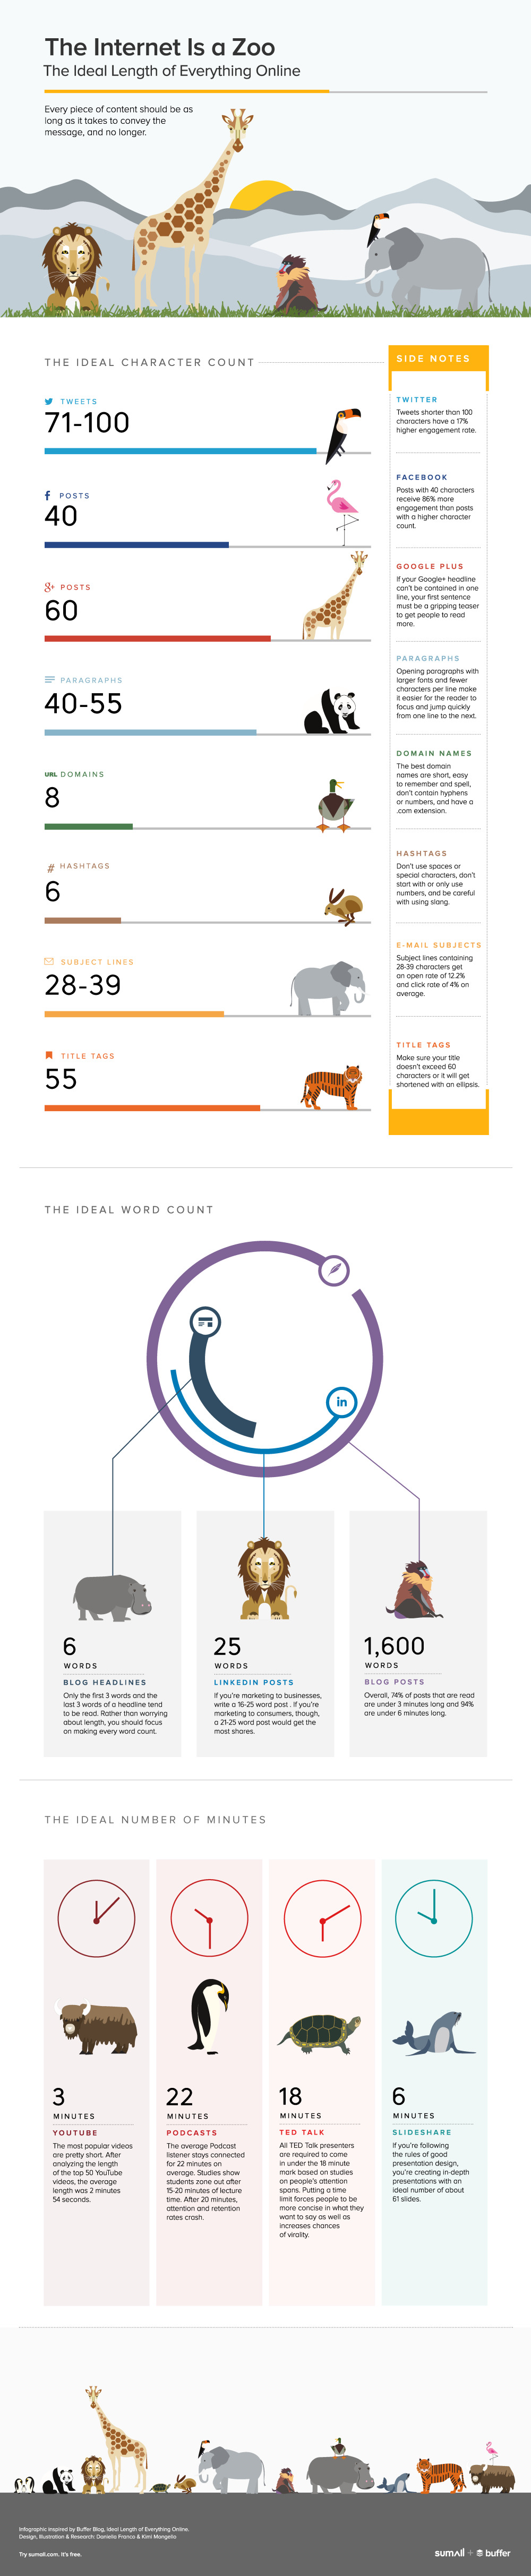 The-internet-Is-A-Zoo-infographic